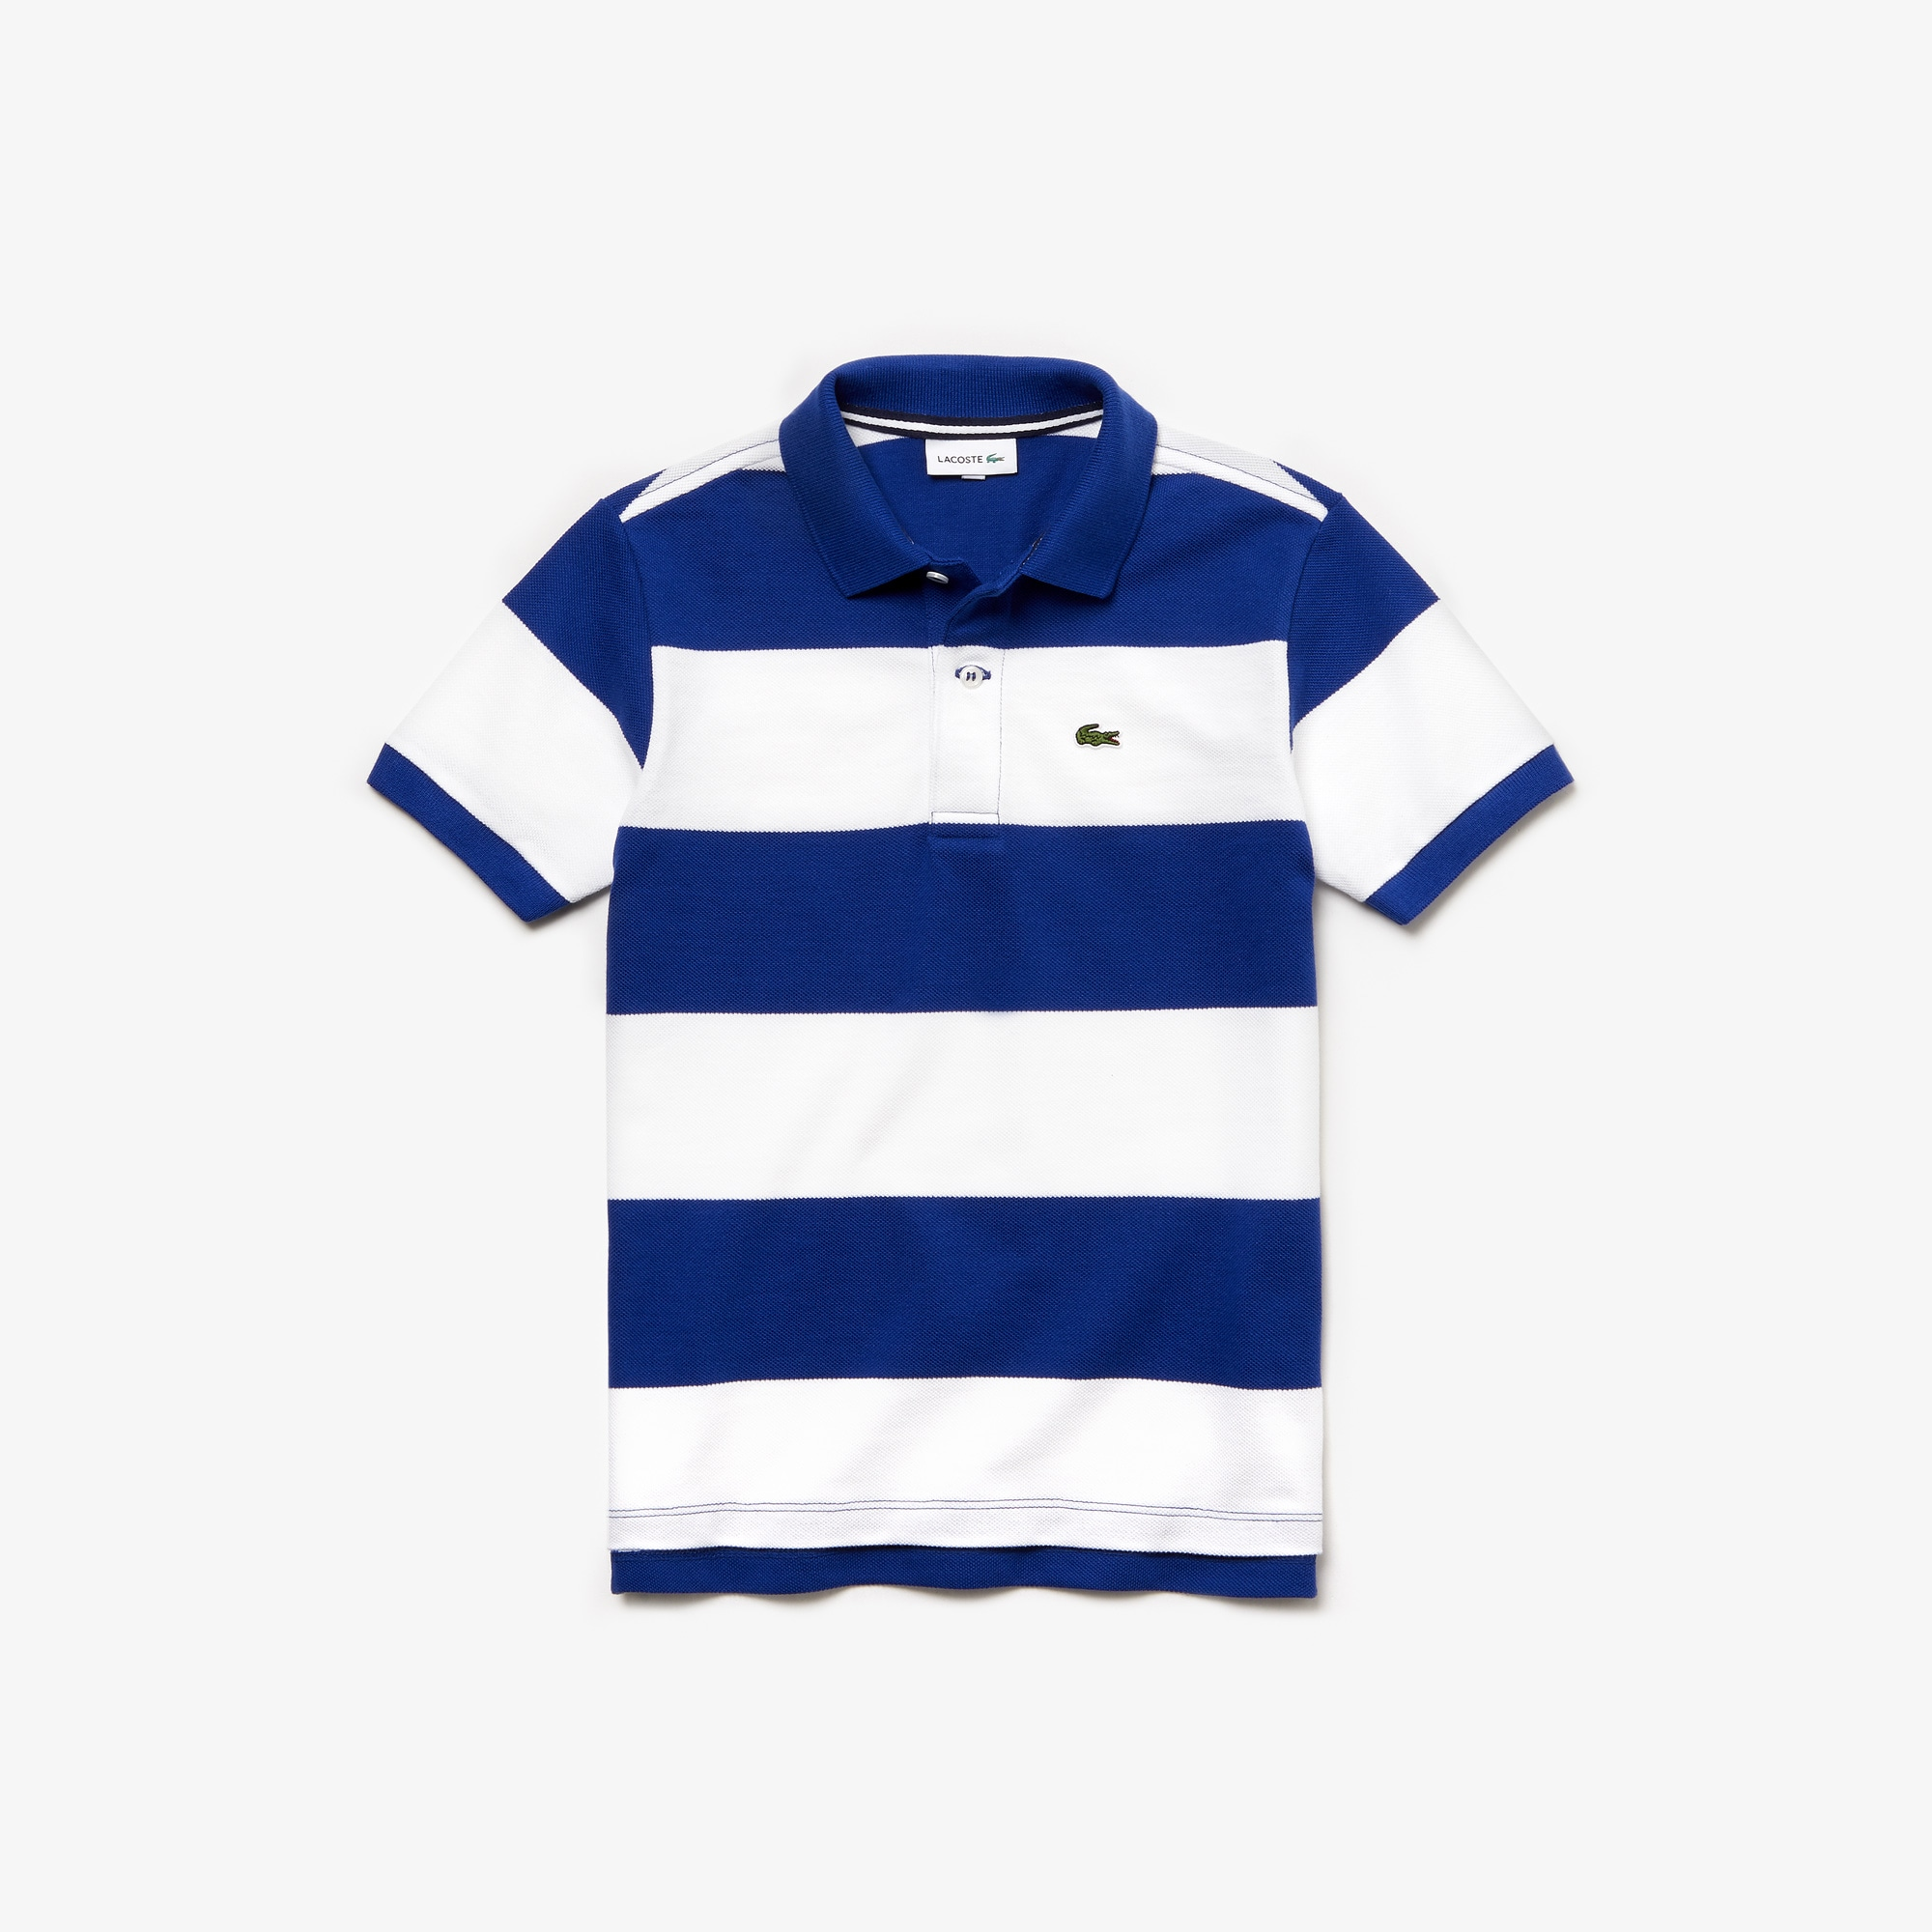 b78437f0fbc Boy's Polos | Kids Fashion | LACOSTE